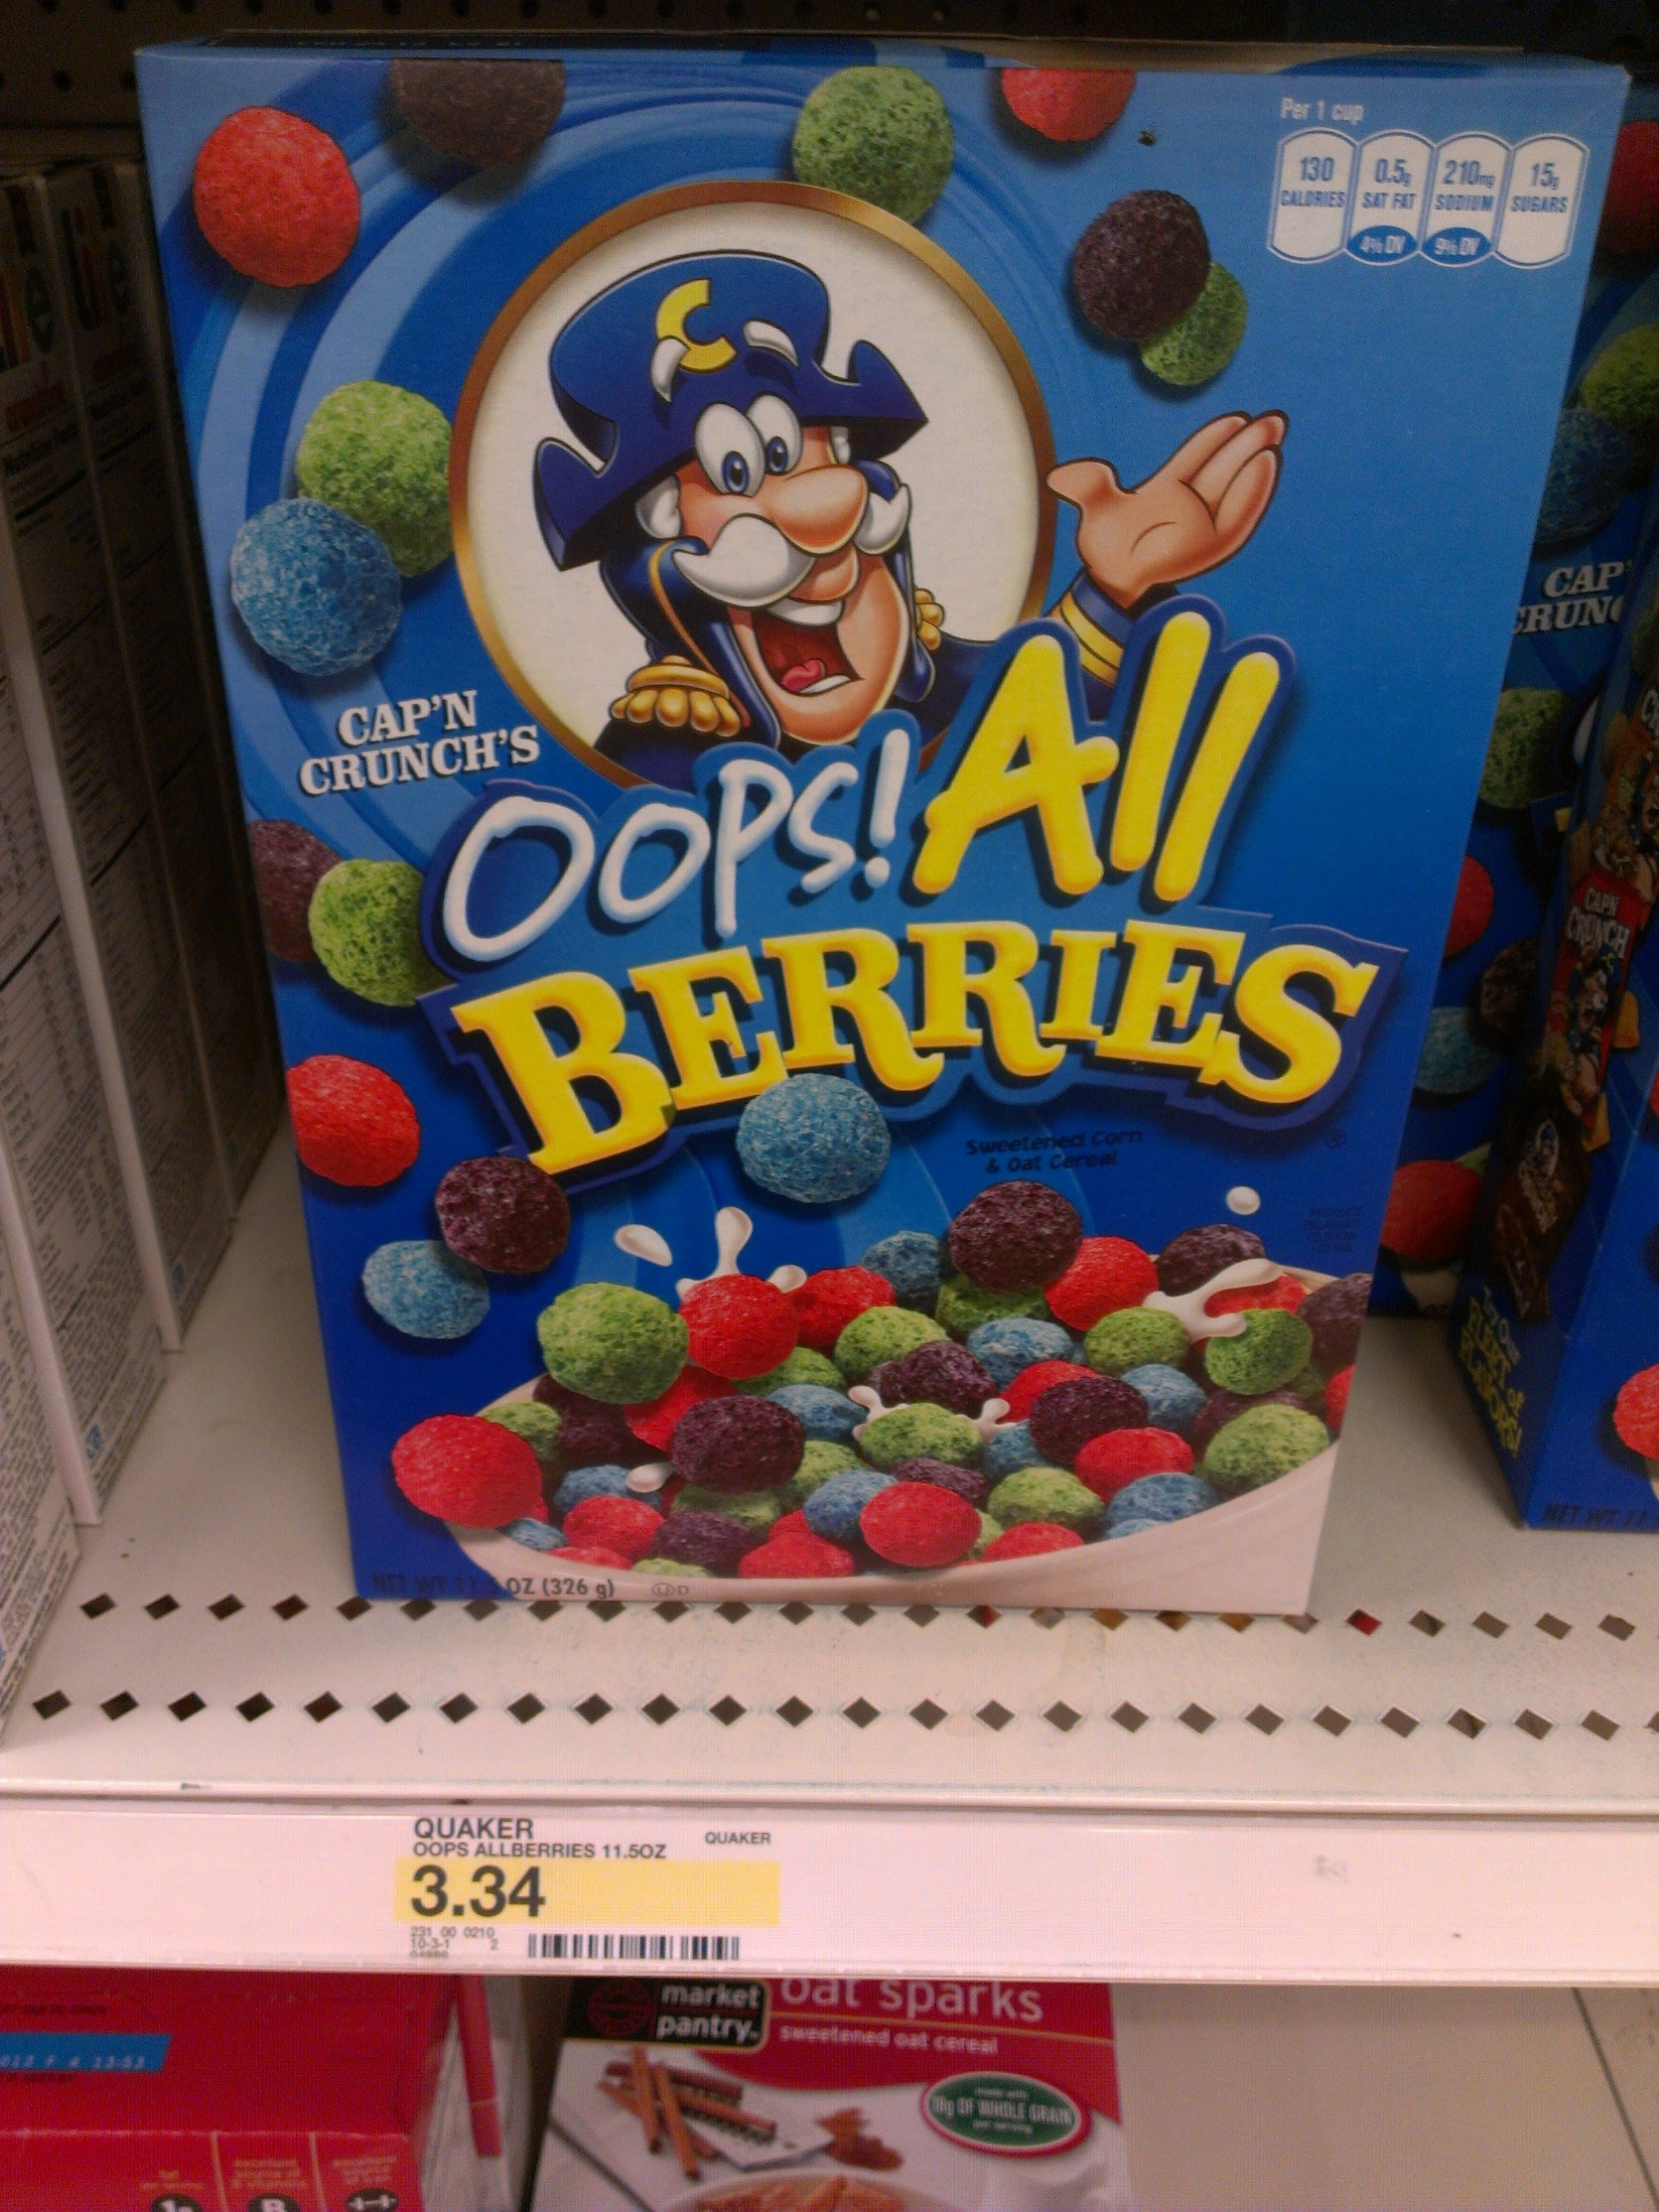 Oops All Berries Is The Best Cereal Of All Time Best Cereal All Berries Frosted Flakes Cereal Box Created by deleteda community for 1 year. pinterest